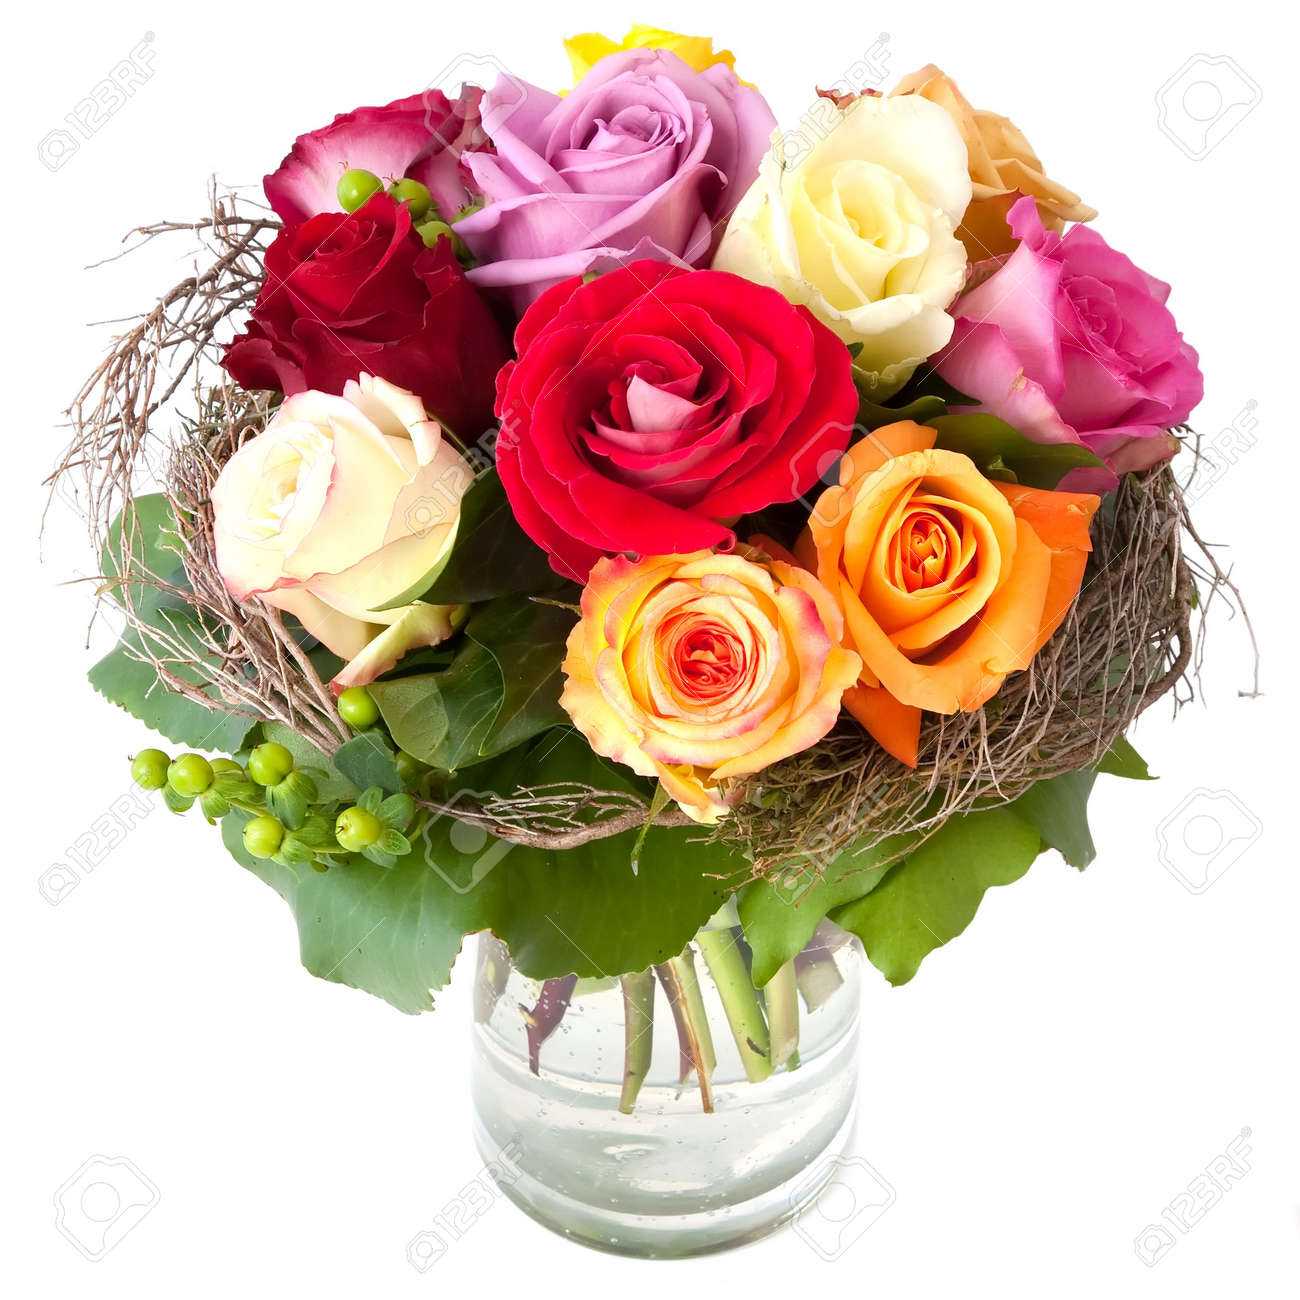 Rose Bouquet Stock Photos. Royalty Free Rose Bouquet Images